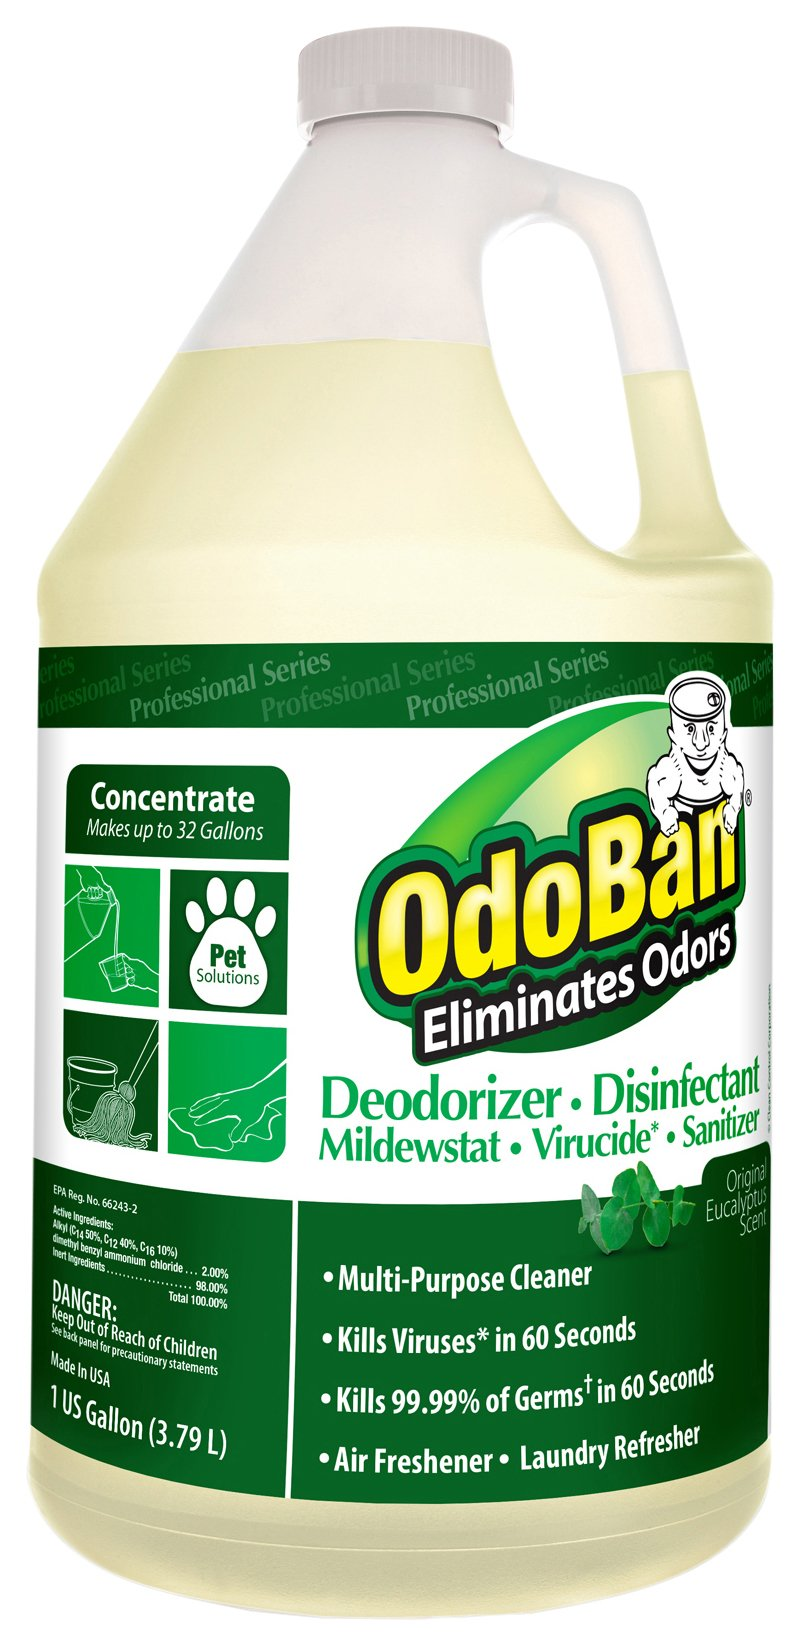 OdoBan Concentrate Disinfectant Laundry and Air Freshener Eucalyptus Scent 4 Gallons by OdoBan (Image #2)